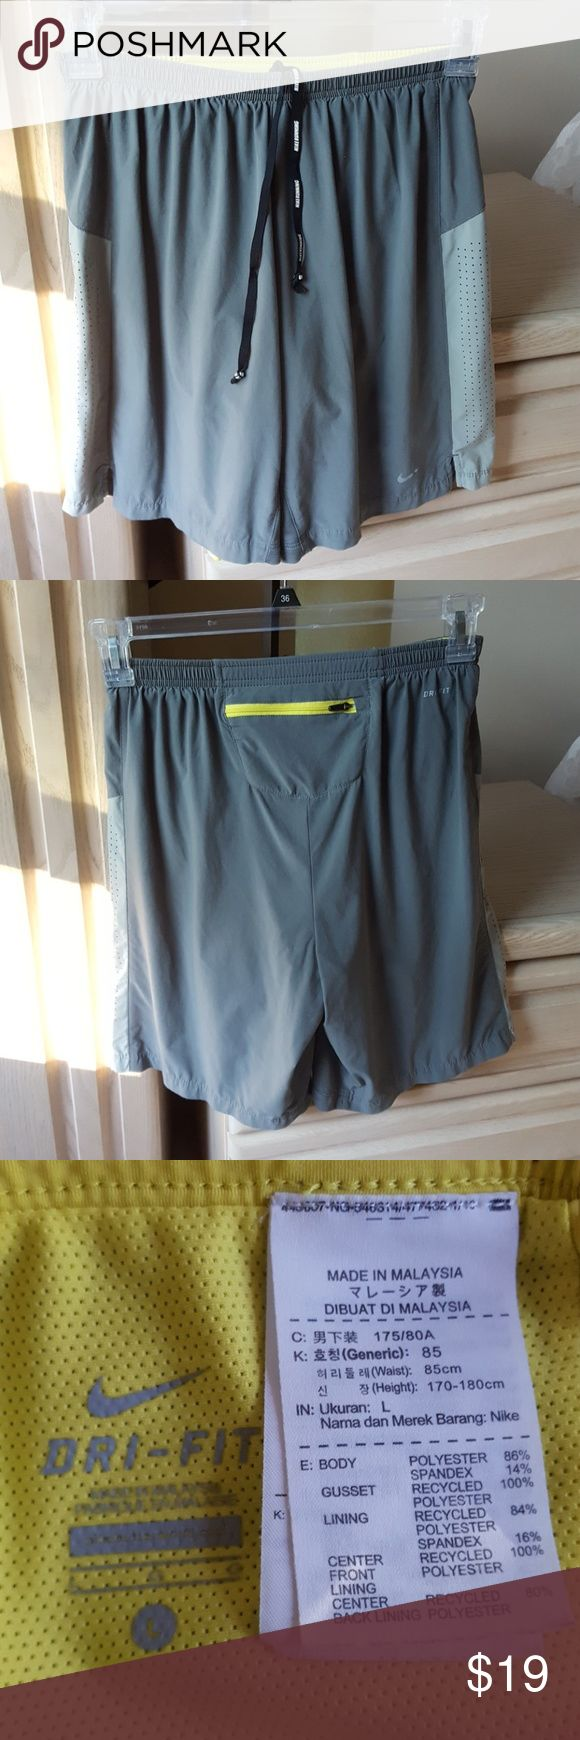 """Nike Shorts Nike Dri-Fit shorts. Excellent condition. Wolf grey with yellow interior. Nike Pro Combat  Dry Training Short. 10"""" inseam for ease of movement. Rear zippered pocket for storage and a secure stretch waistband w/drawstrings. *Could be worn as a boys' large or a women's M. Waist is appx 26""""       ♥️From a smoke & pet free home♥️ Nike Shorts"""